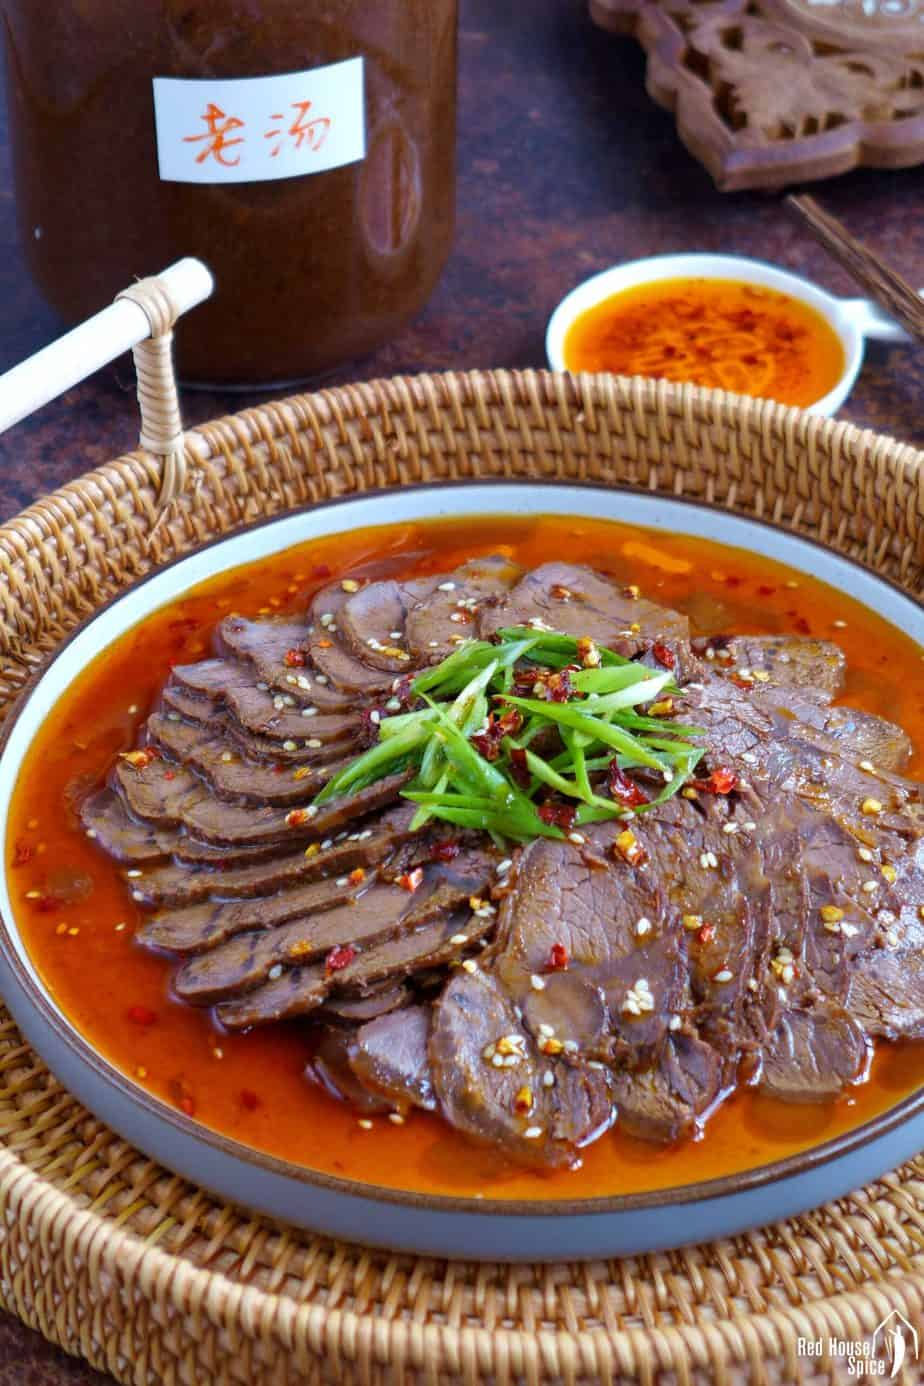 A plate of beef slices and a jar of beef stock